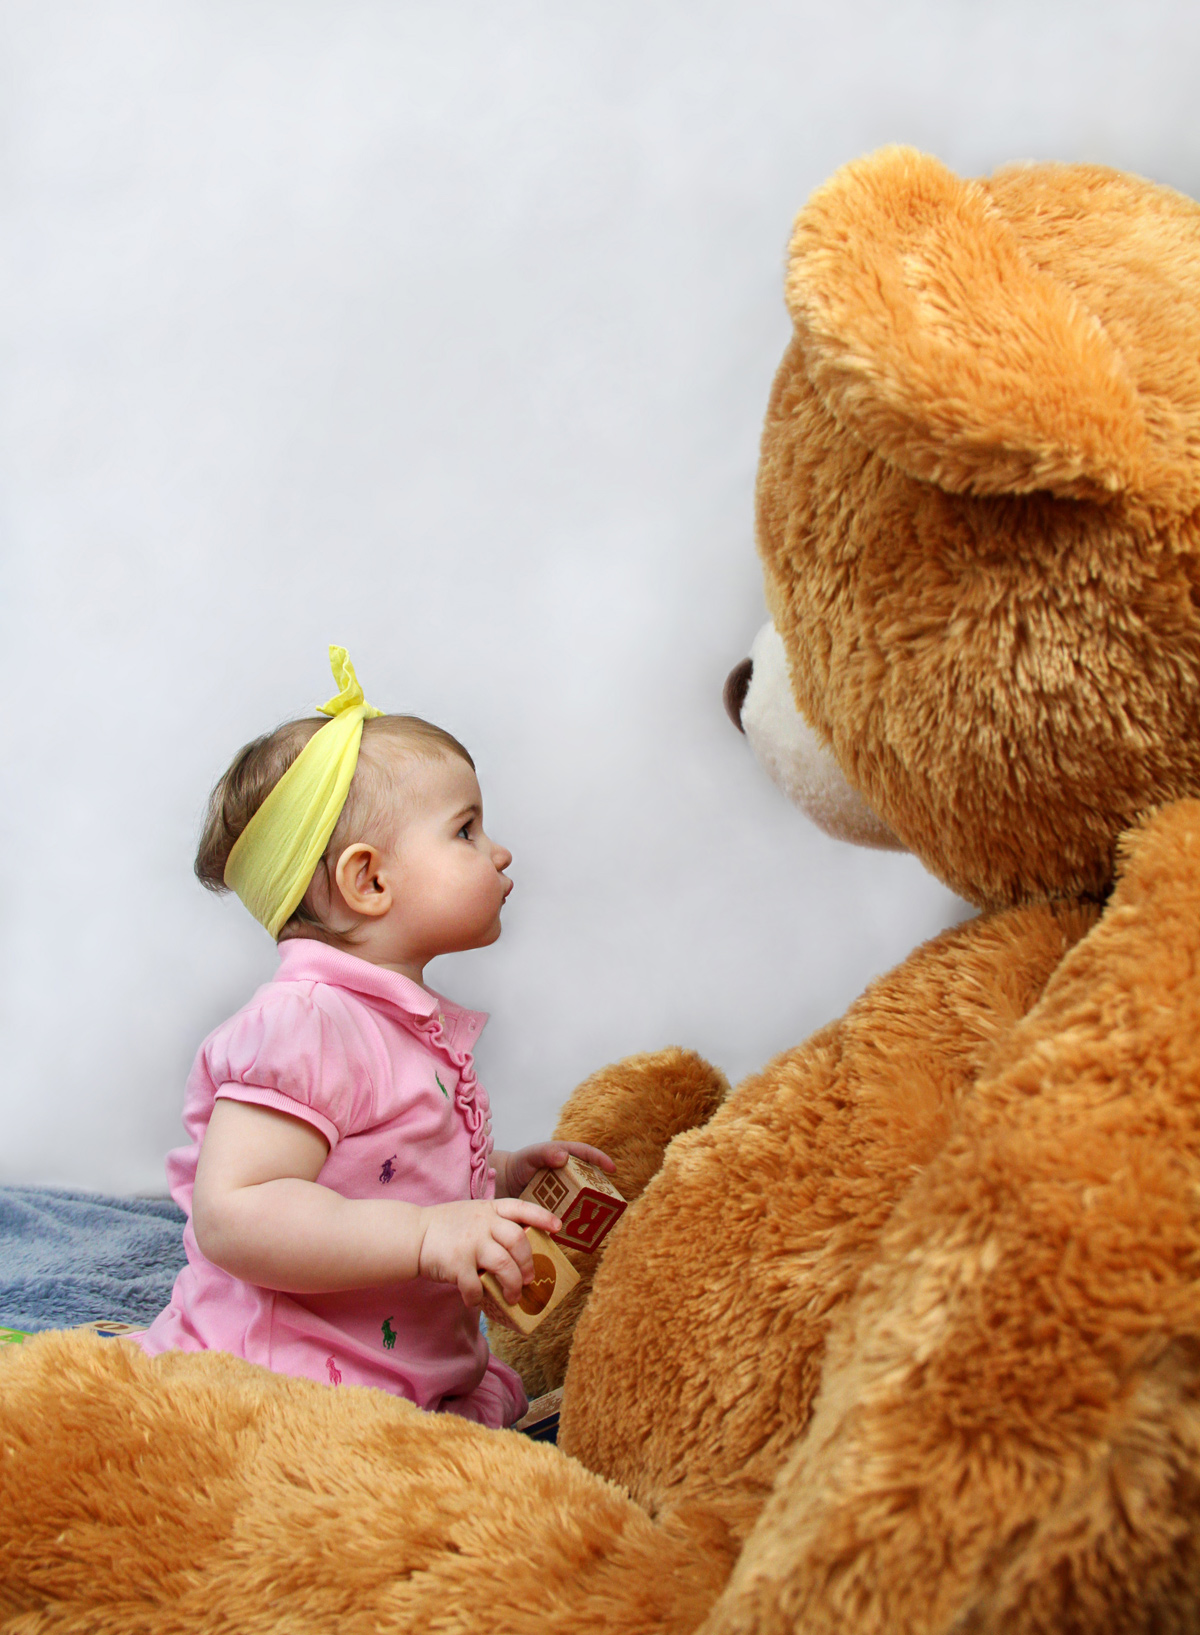 Baby girl and big teddy bear